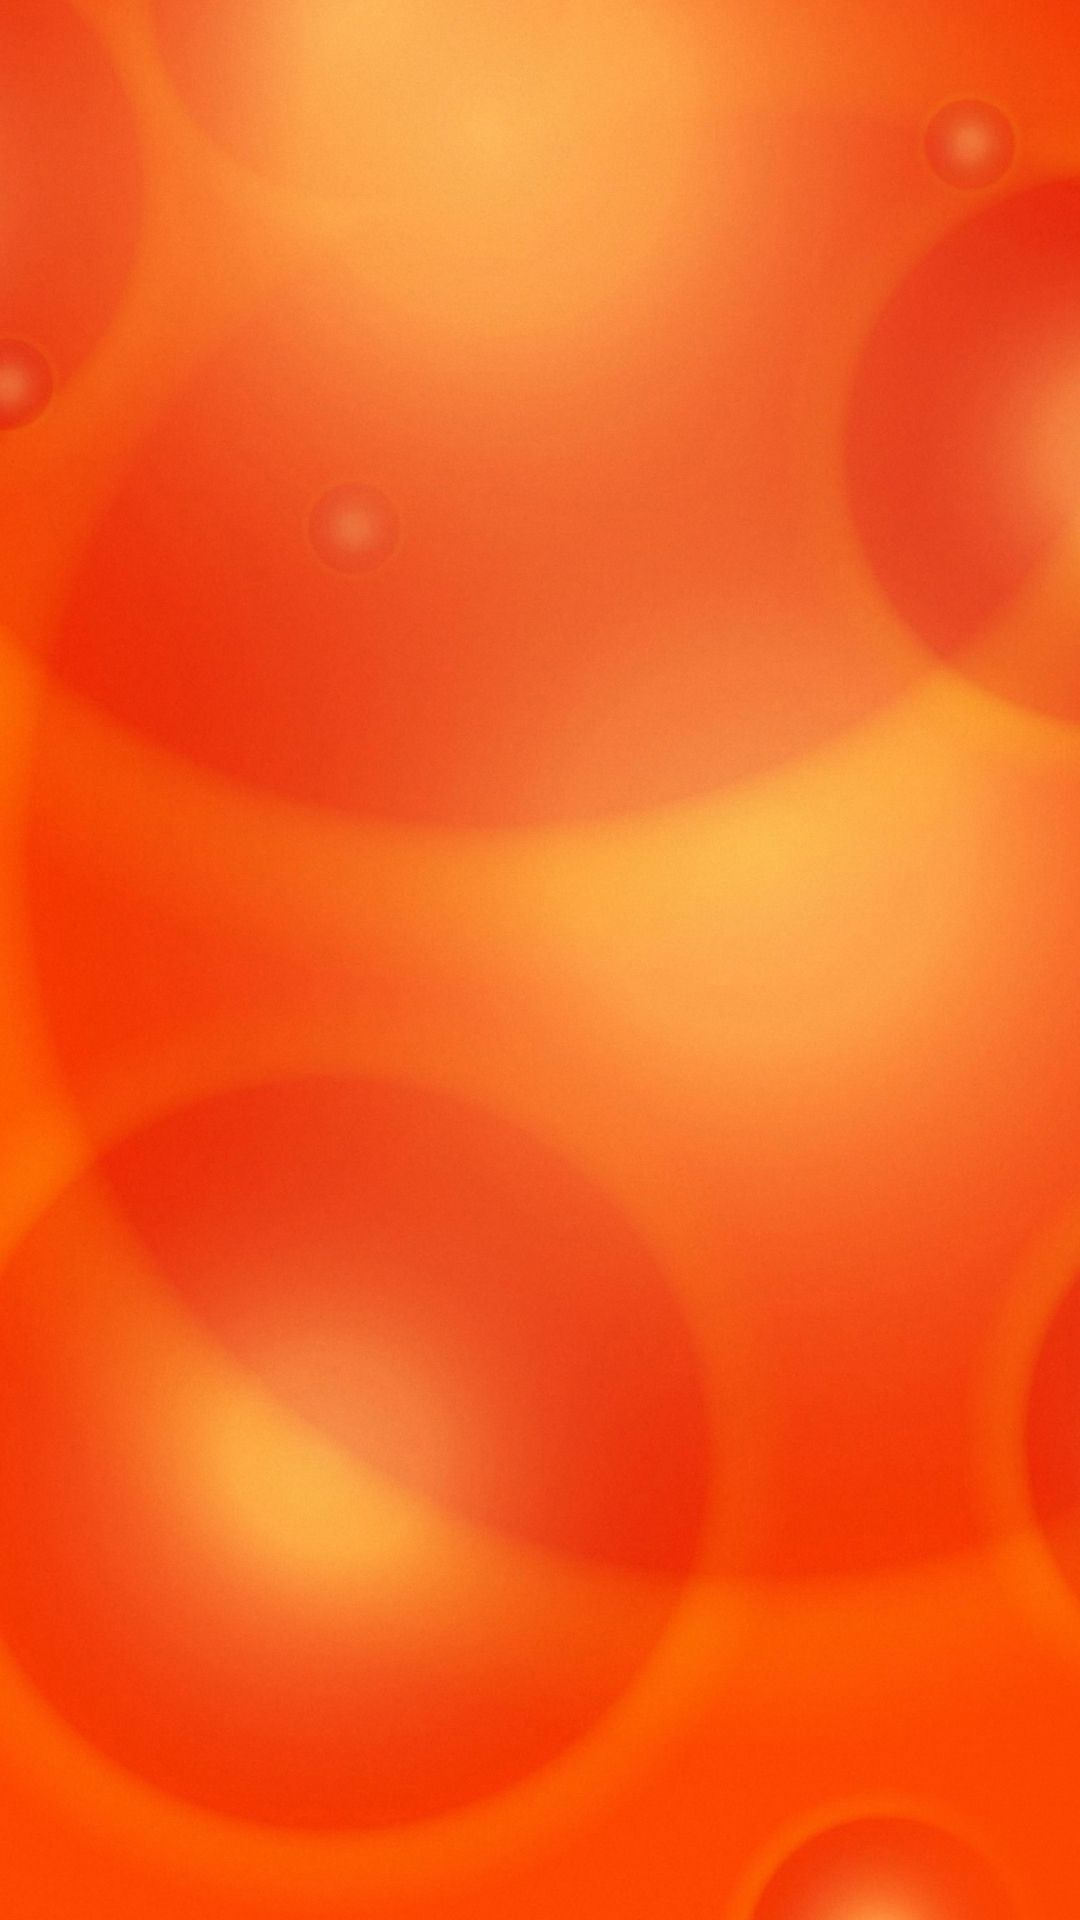 Wallpaper iphone orange - Orange Abstract Bubbles Iphone 6 Wallpapers Hd Colors Wallpaper Pinterest View Source Bubbles And Wallpaper